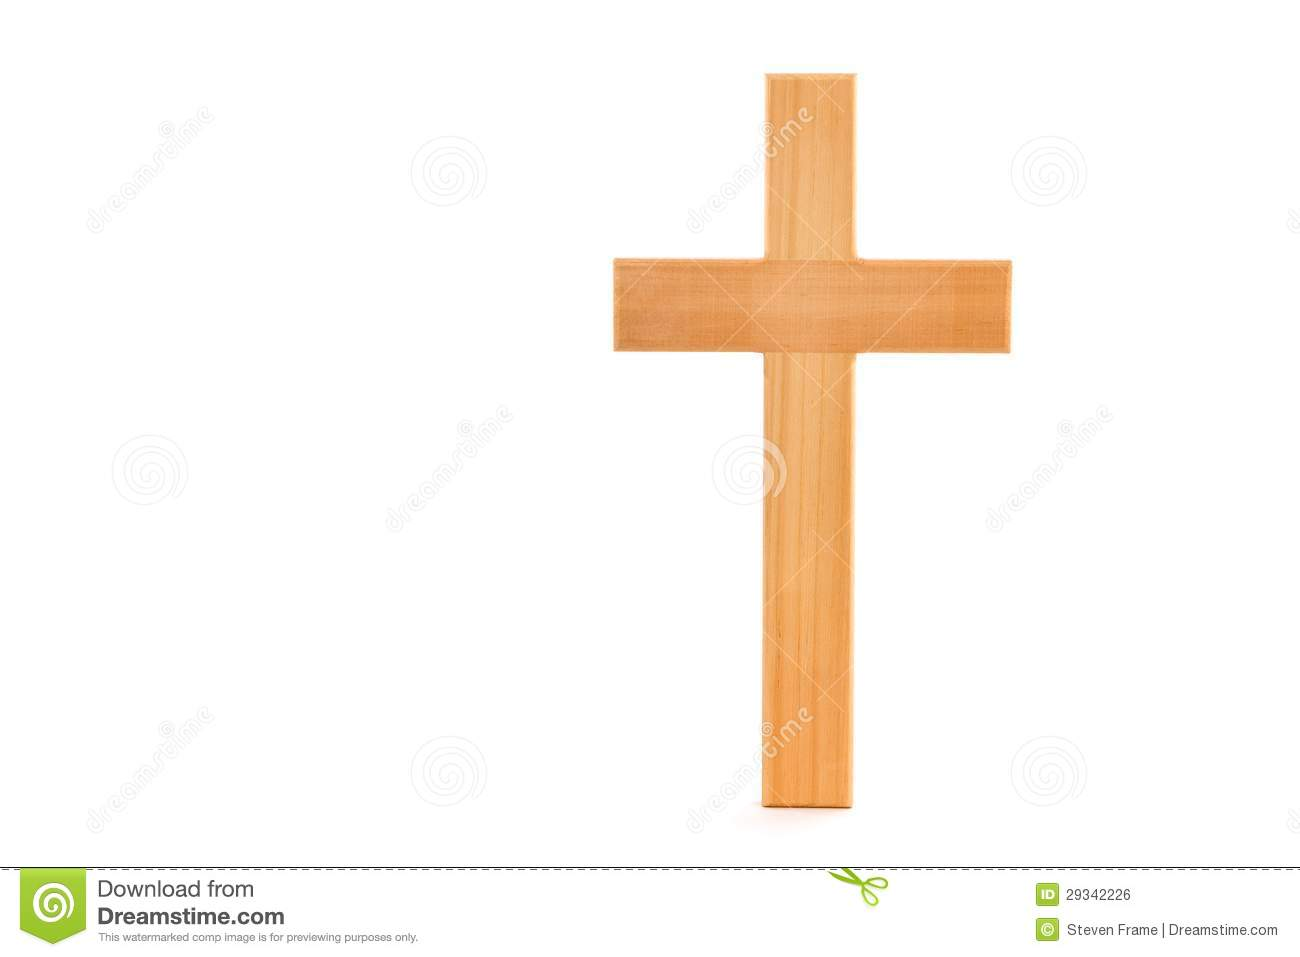 Wooden Cross stock photo. Image of worship, religious - 29342226